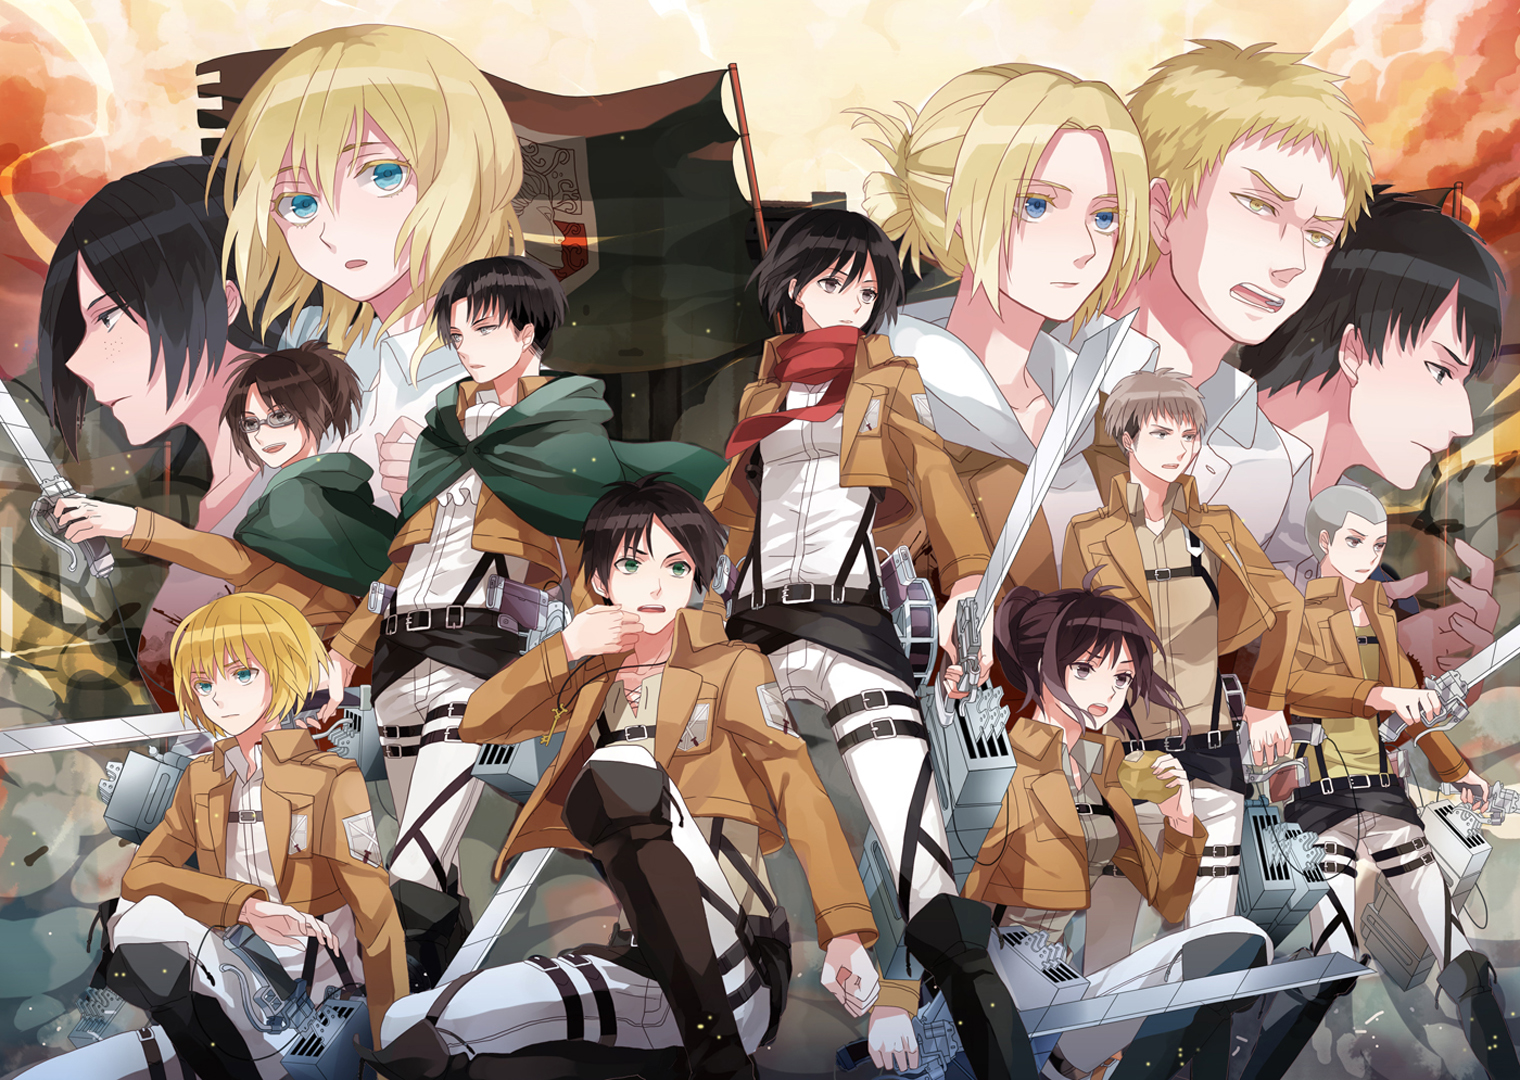 Free Download Levi Armin Annie Leonhard Sasha Braus Hd Wallpaper Backgrounds F9 1520x1080 For Your Desktop Mobile Tablet Explore 50 Attack On Titan Annie Wallpaper Attack On Titans Wallpaper